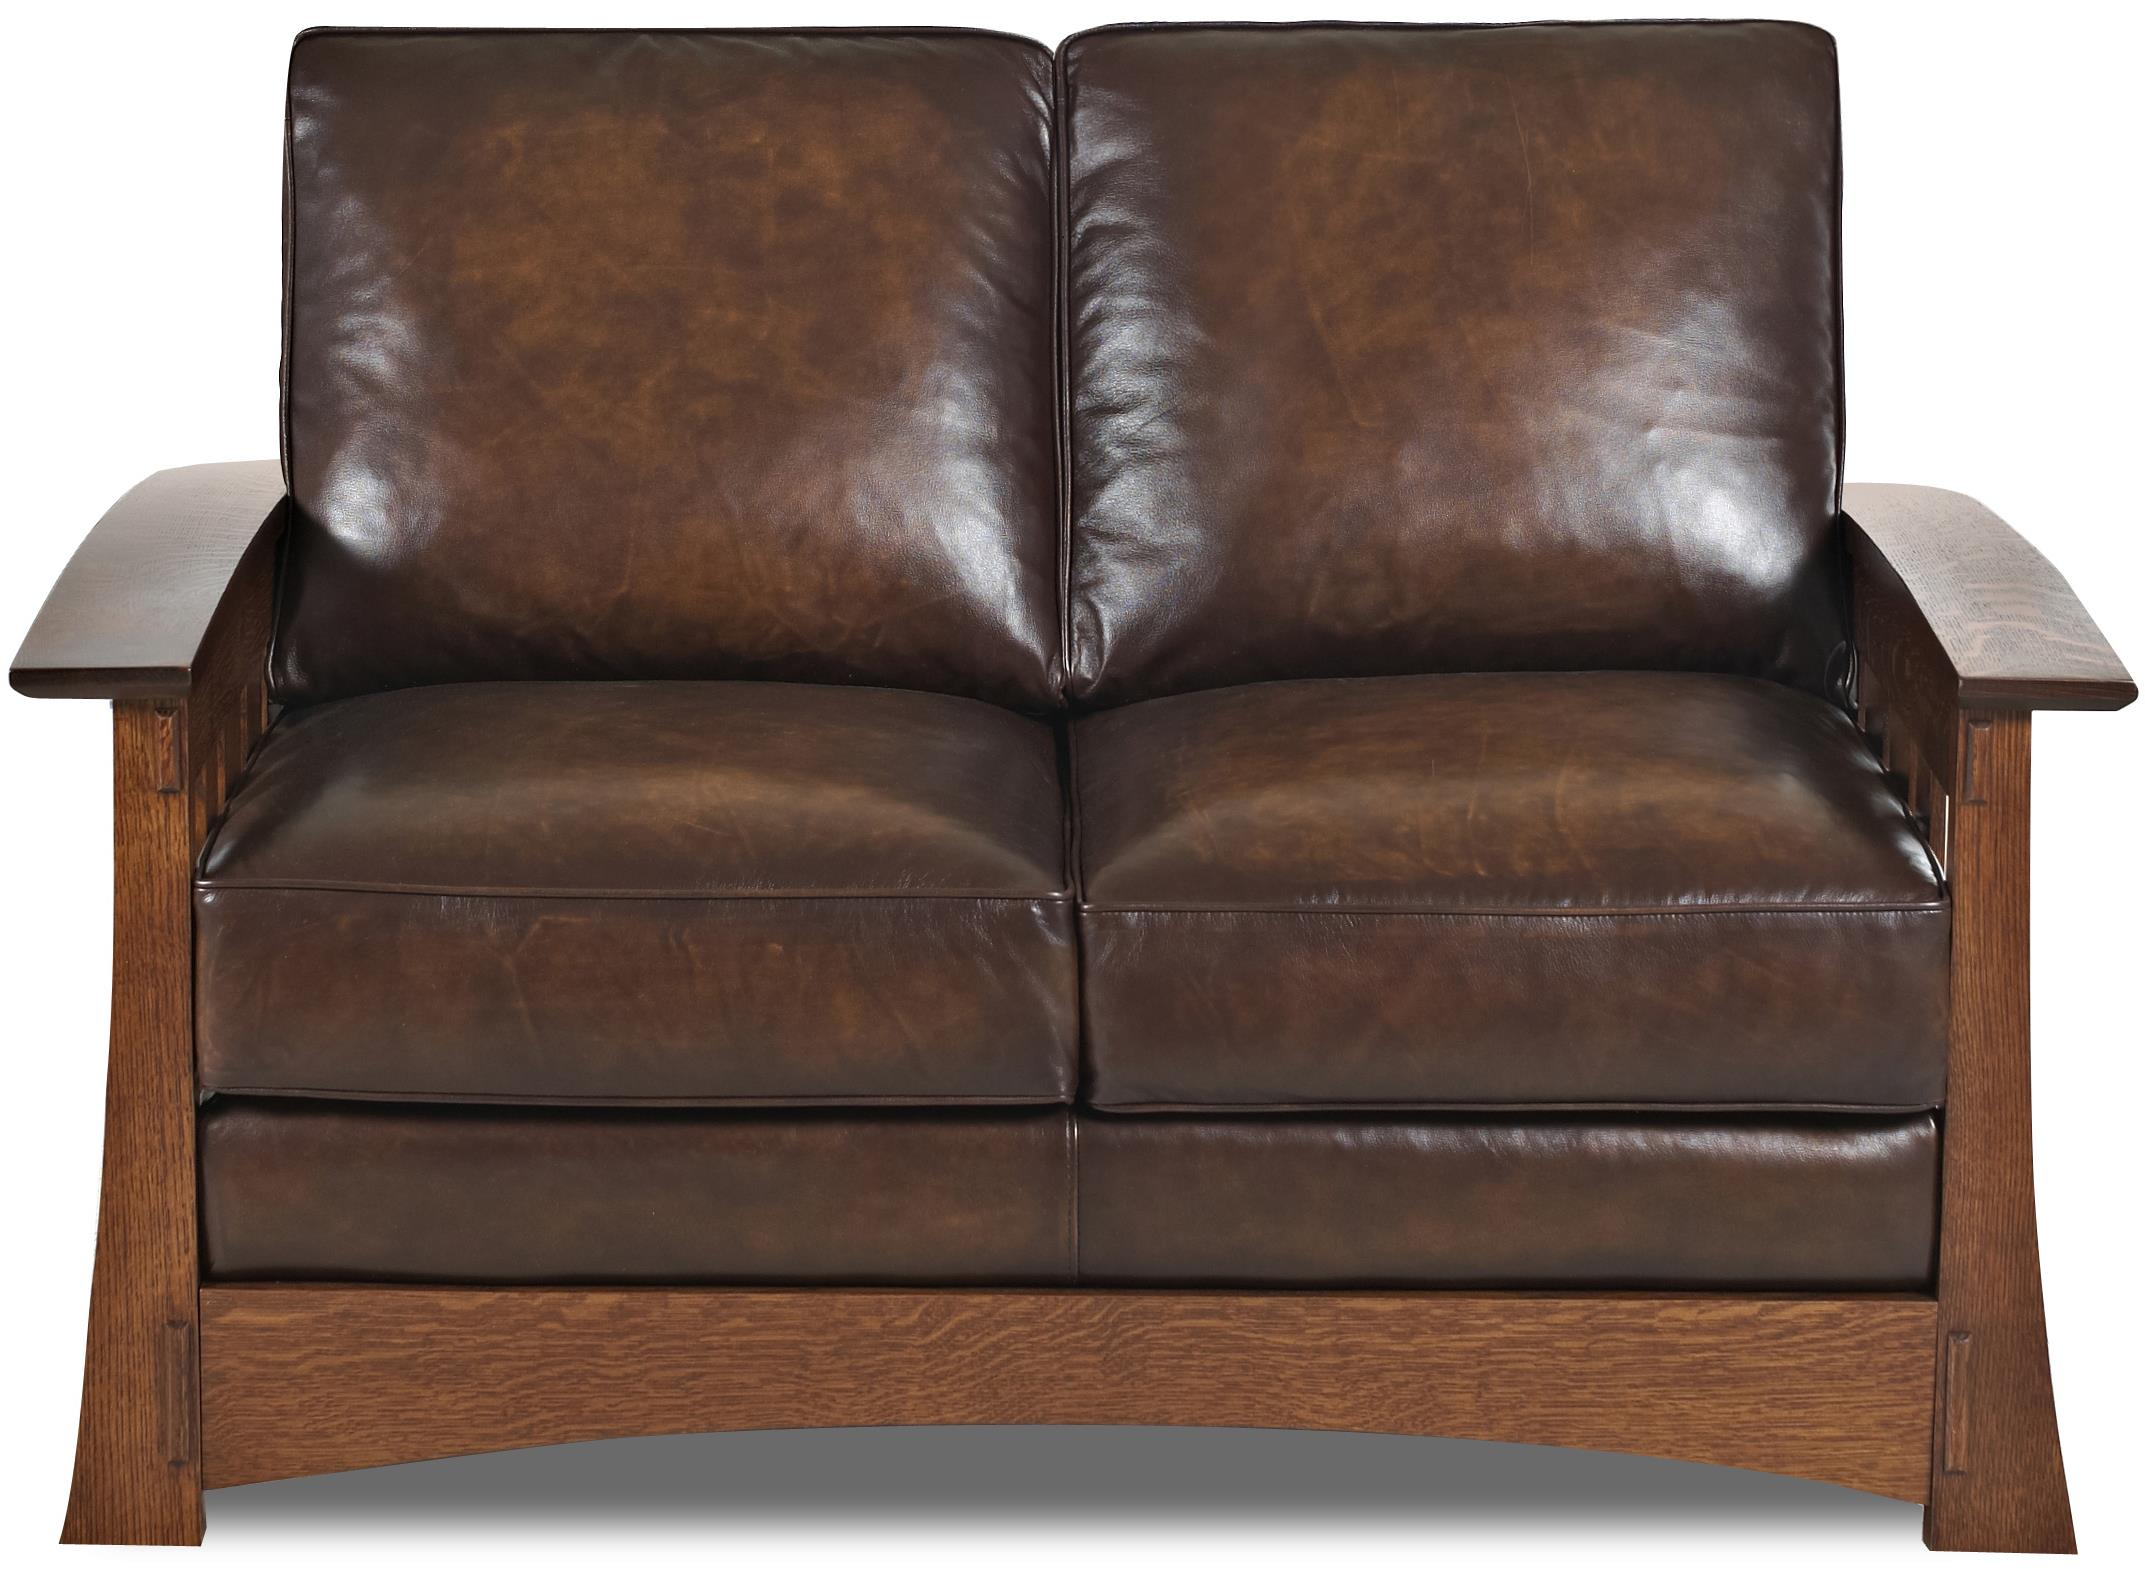 Highlands Loveseat by Comfort Design at Stuckey Furniture